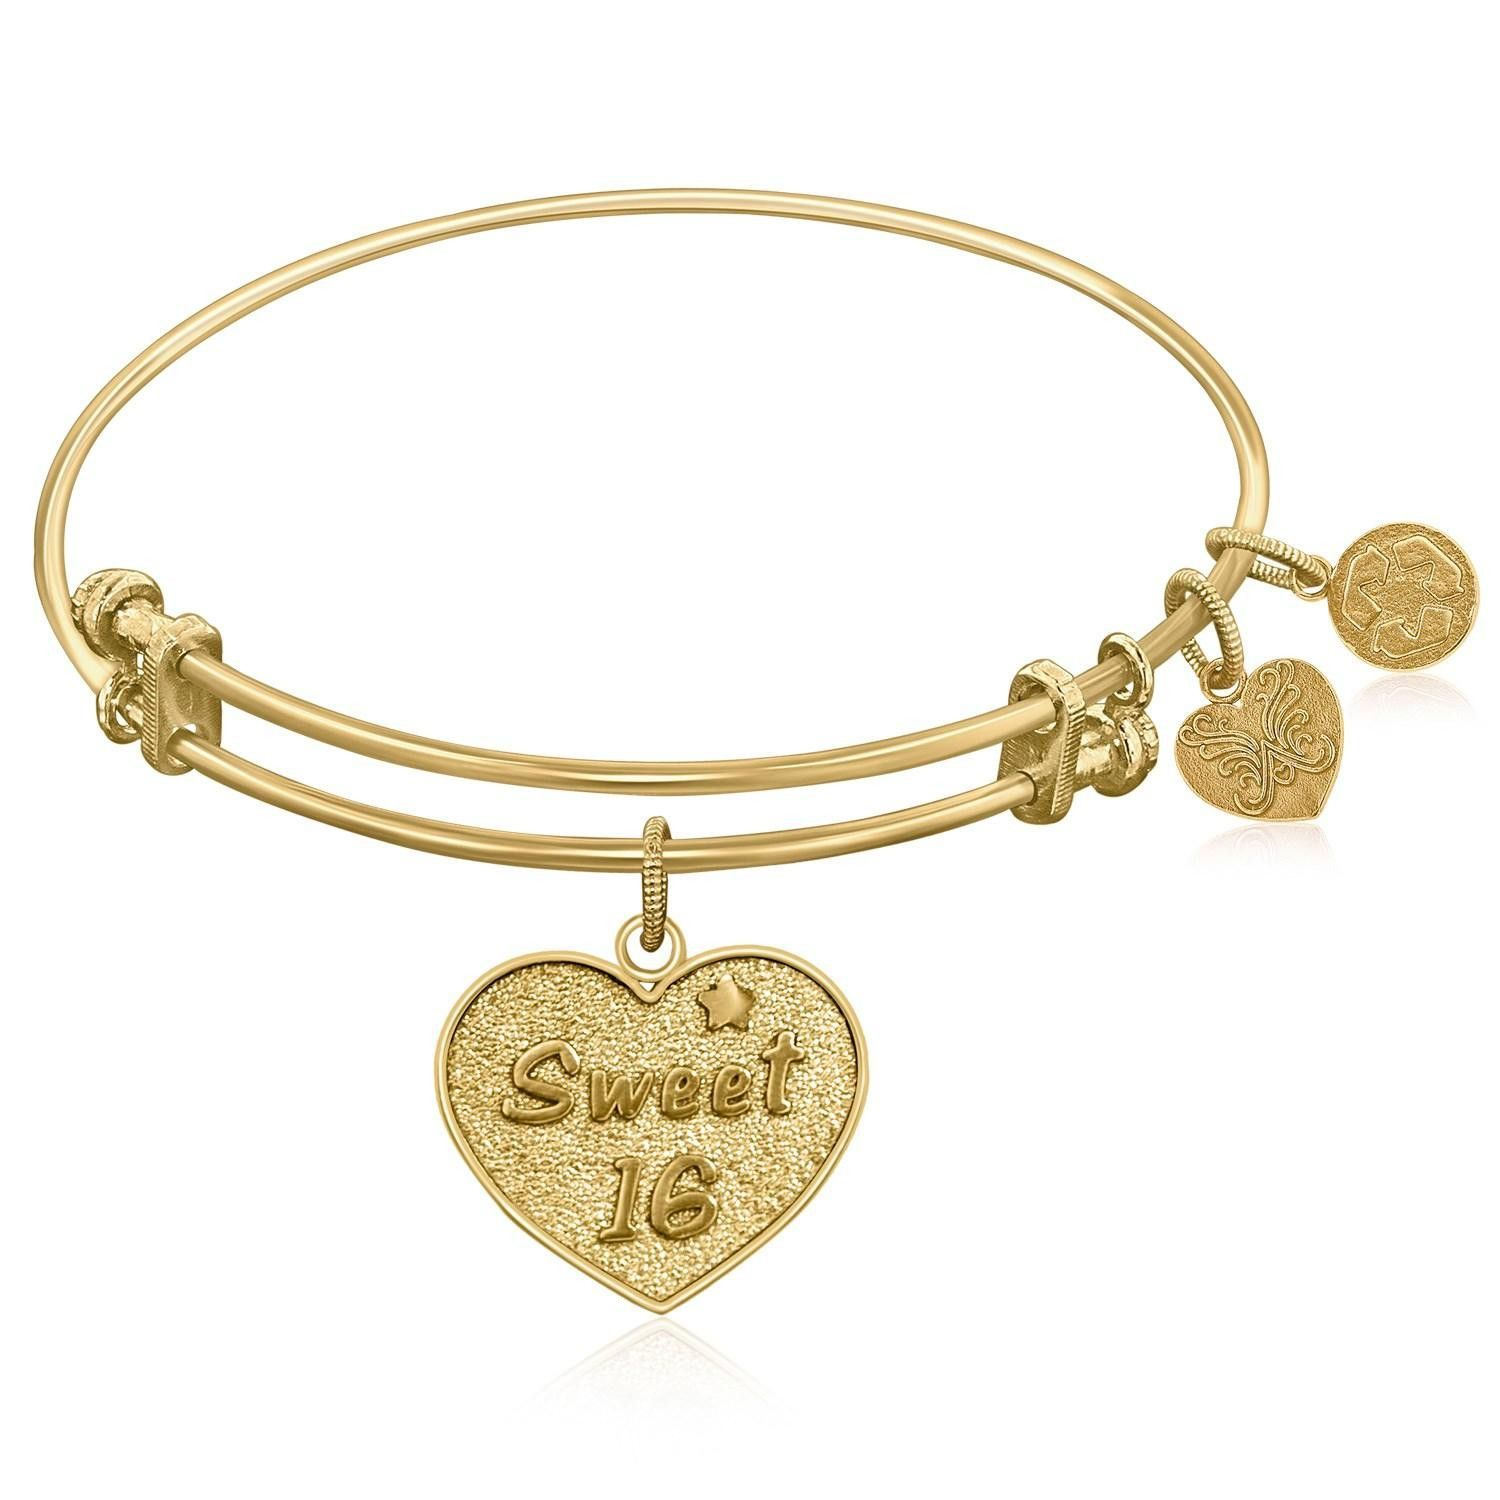 Expandable Bangle in Yellow Tone Brass with Sweet 16 Symbol